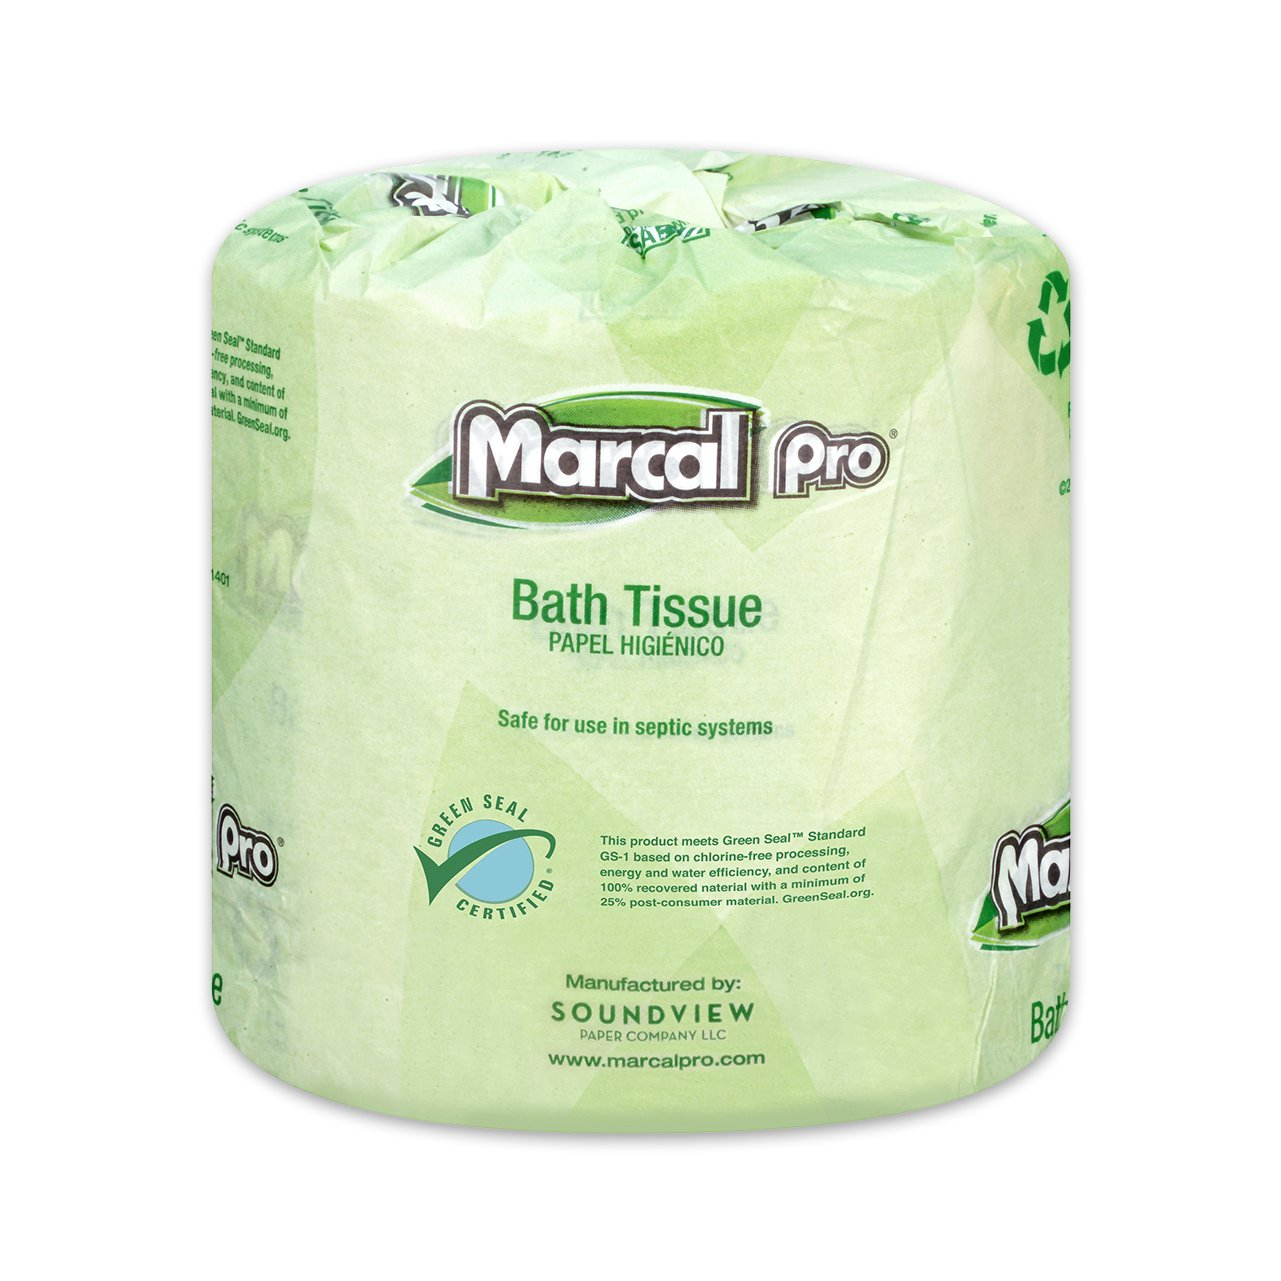 Marcal Pro Toilet Paper, 100% Recycled - 2-Ply, White, 500 Soft & Absorbent Sheets per Roll, 96 Rolls per Case - Green Seal Certified, Bulk Office Bath Tissue 05002 by Marcal (Image #3)